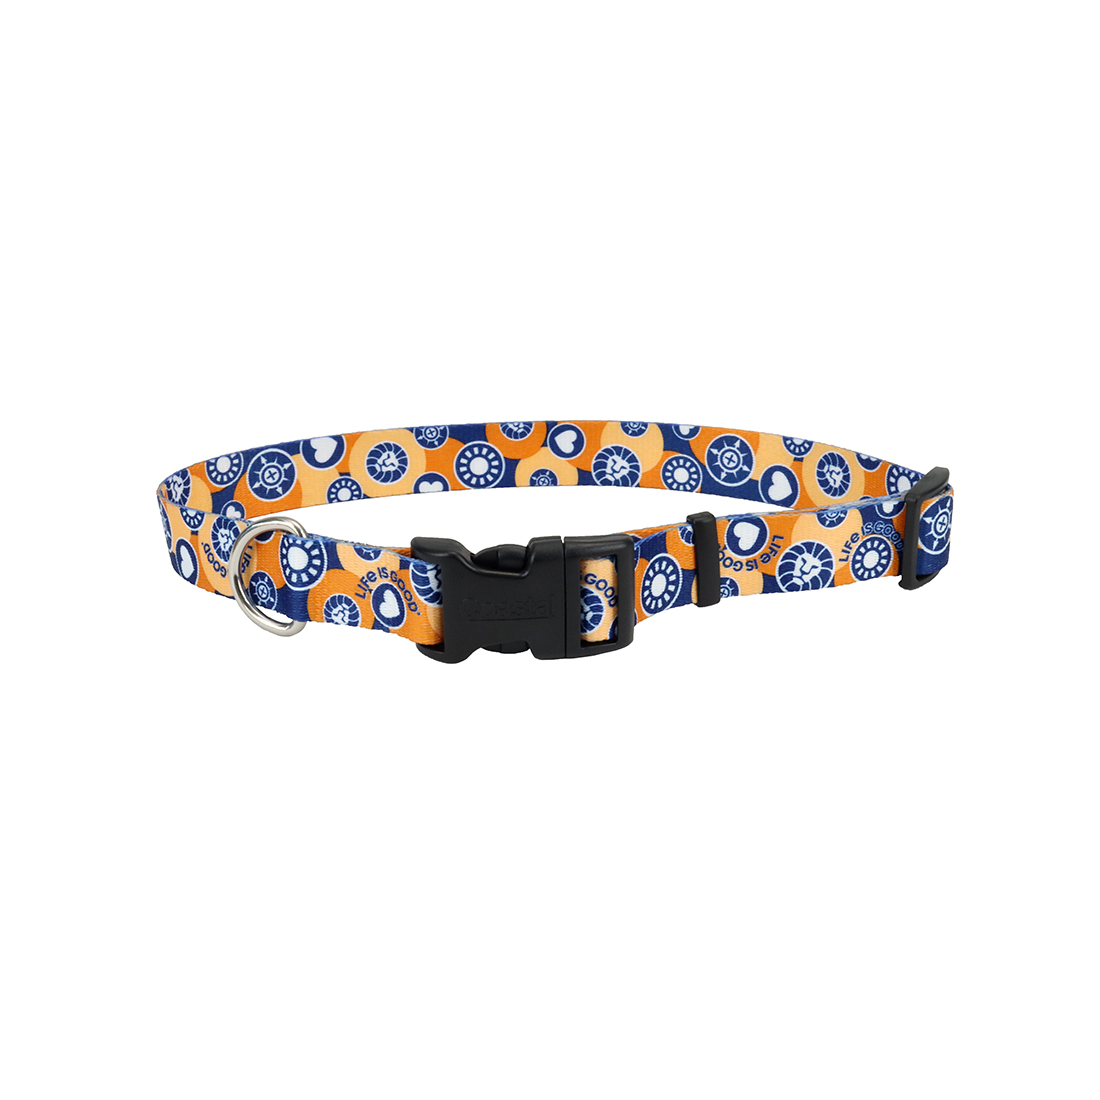 Life is Good Styles Adjustable Dog Collar